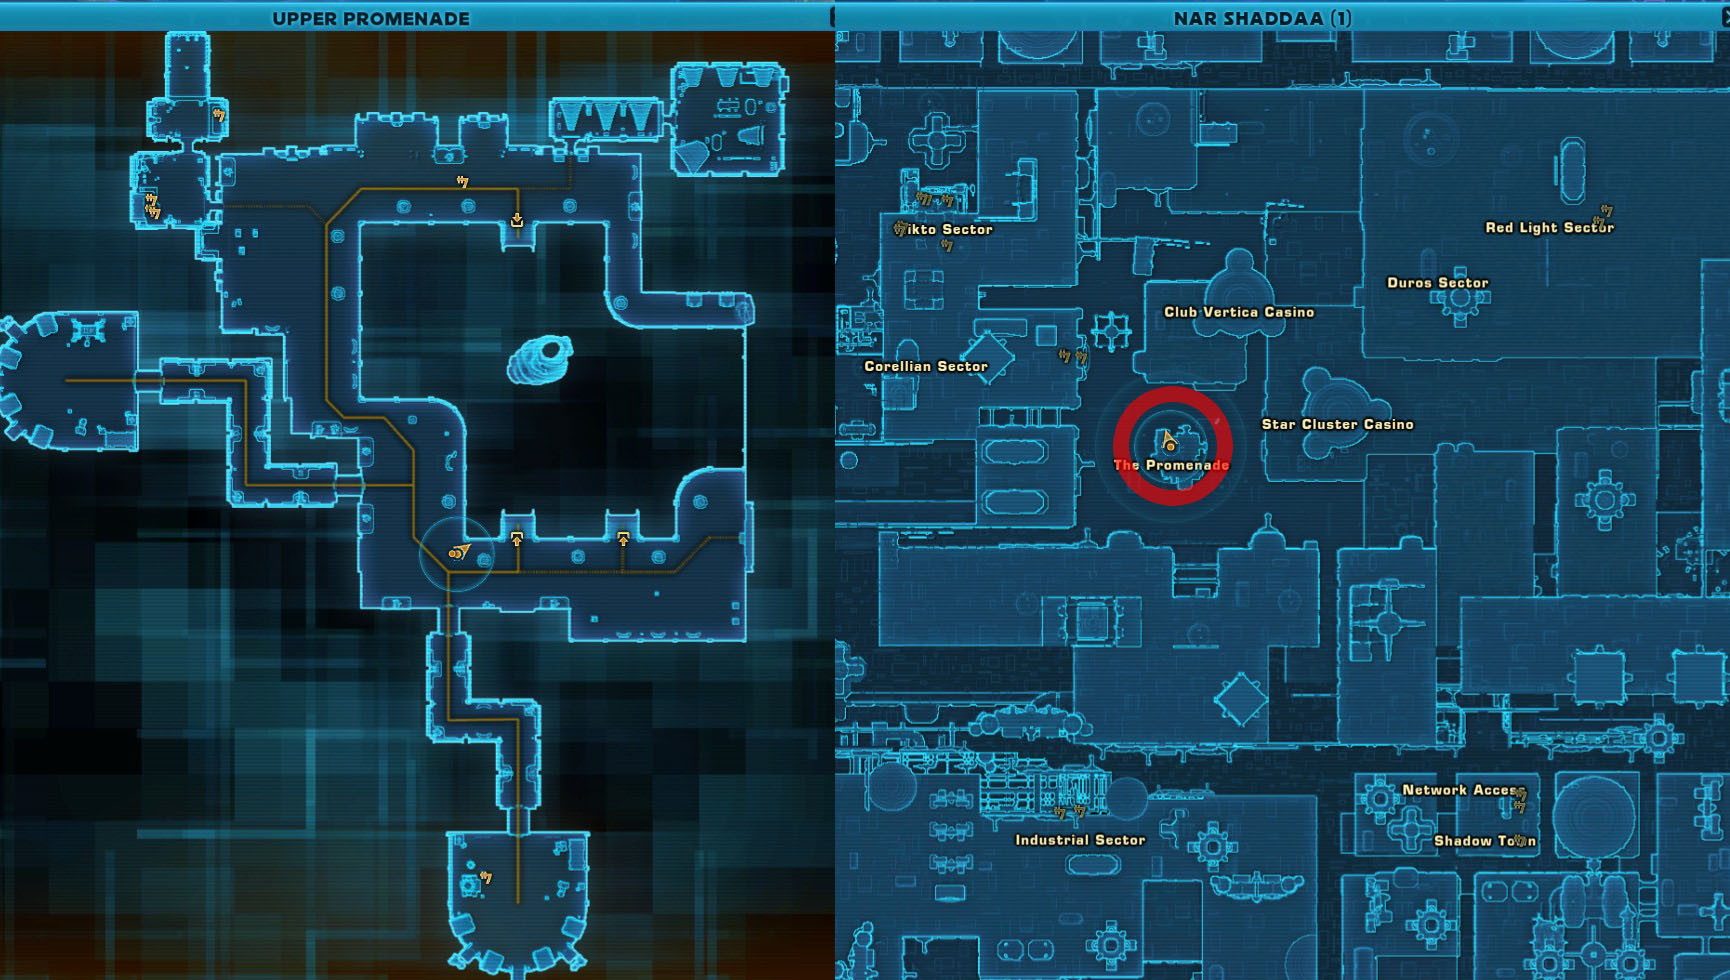 Swtor Life Day Event Nar Shaddaa Overheated Gift Droids Location